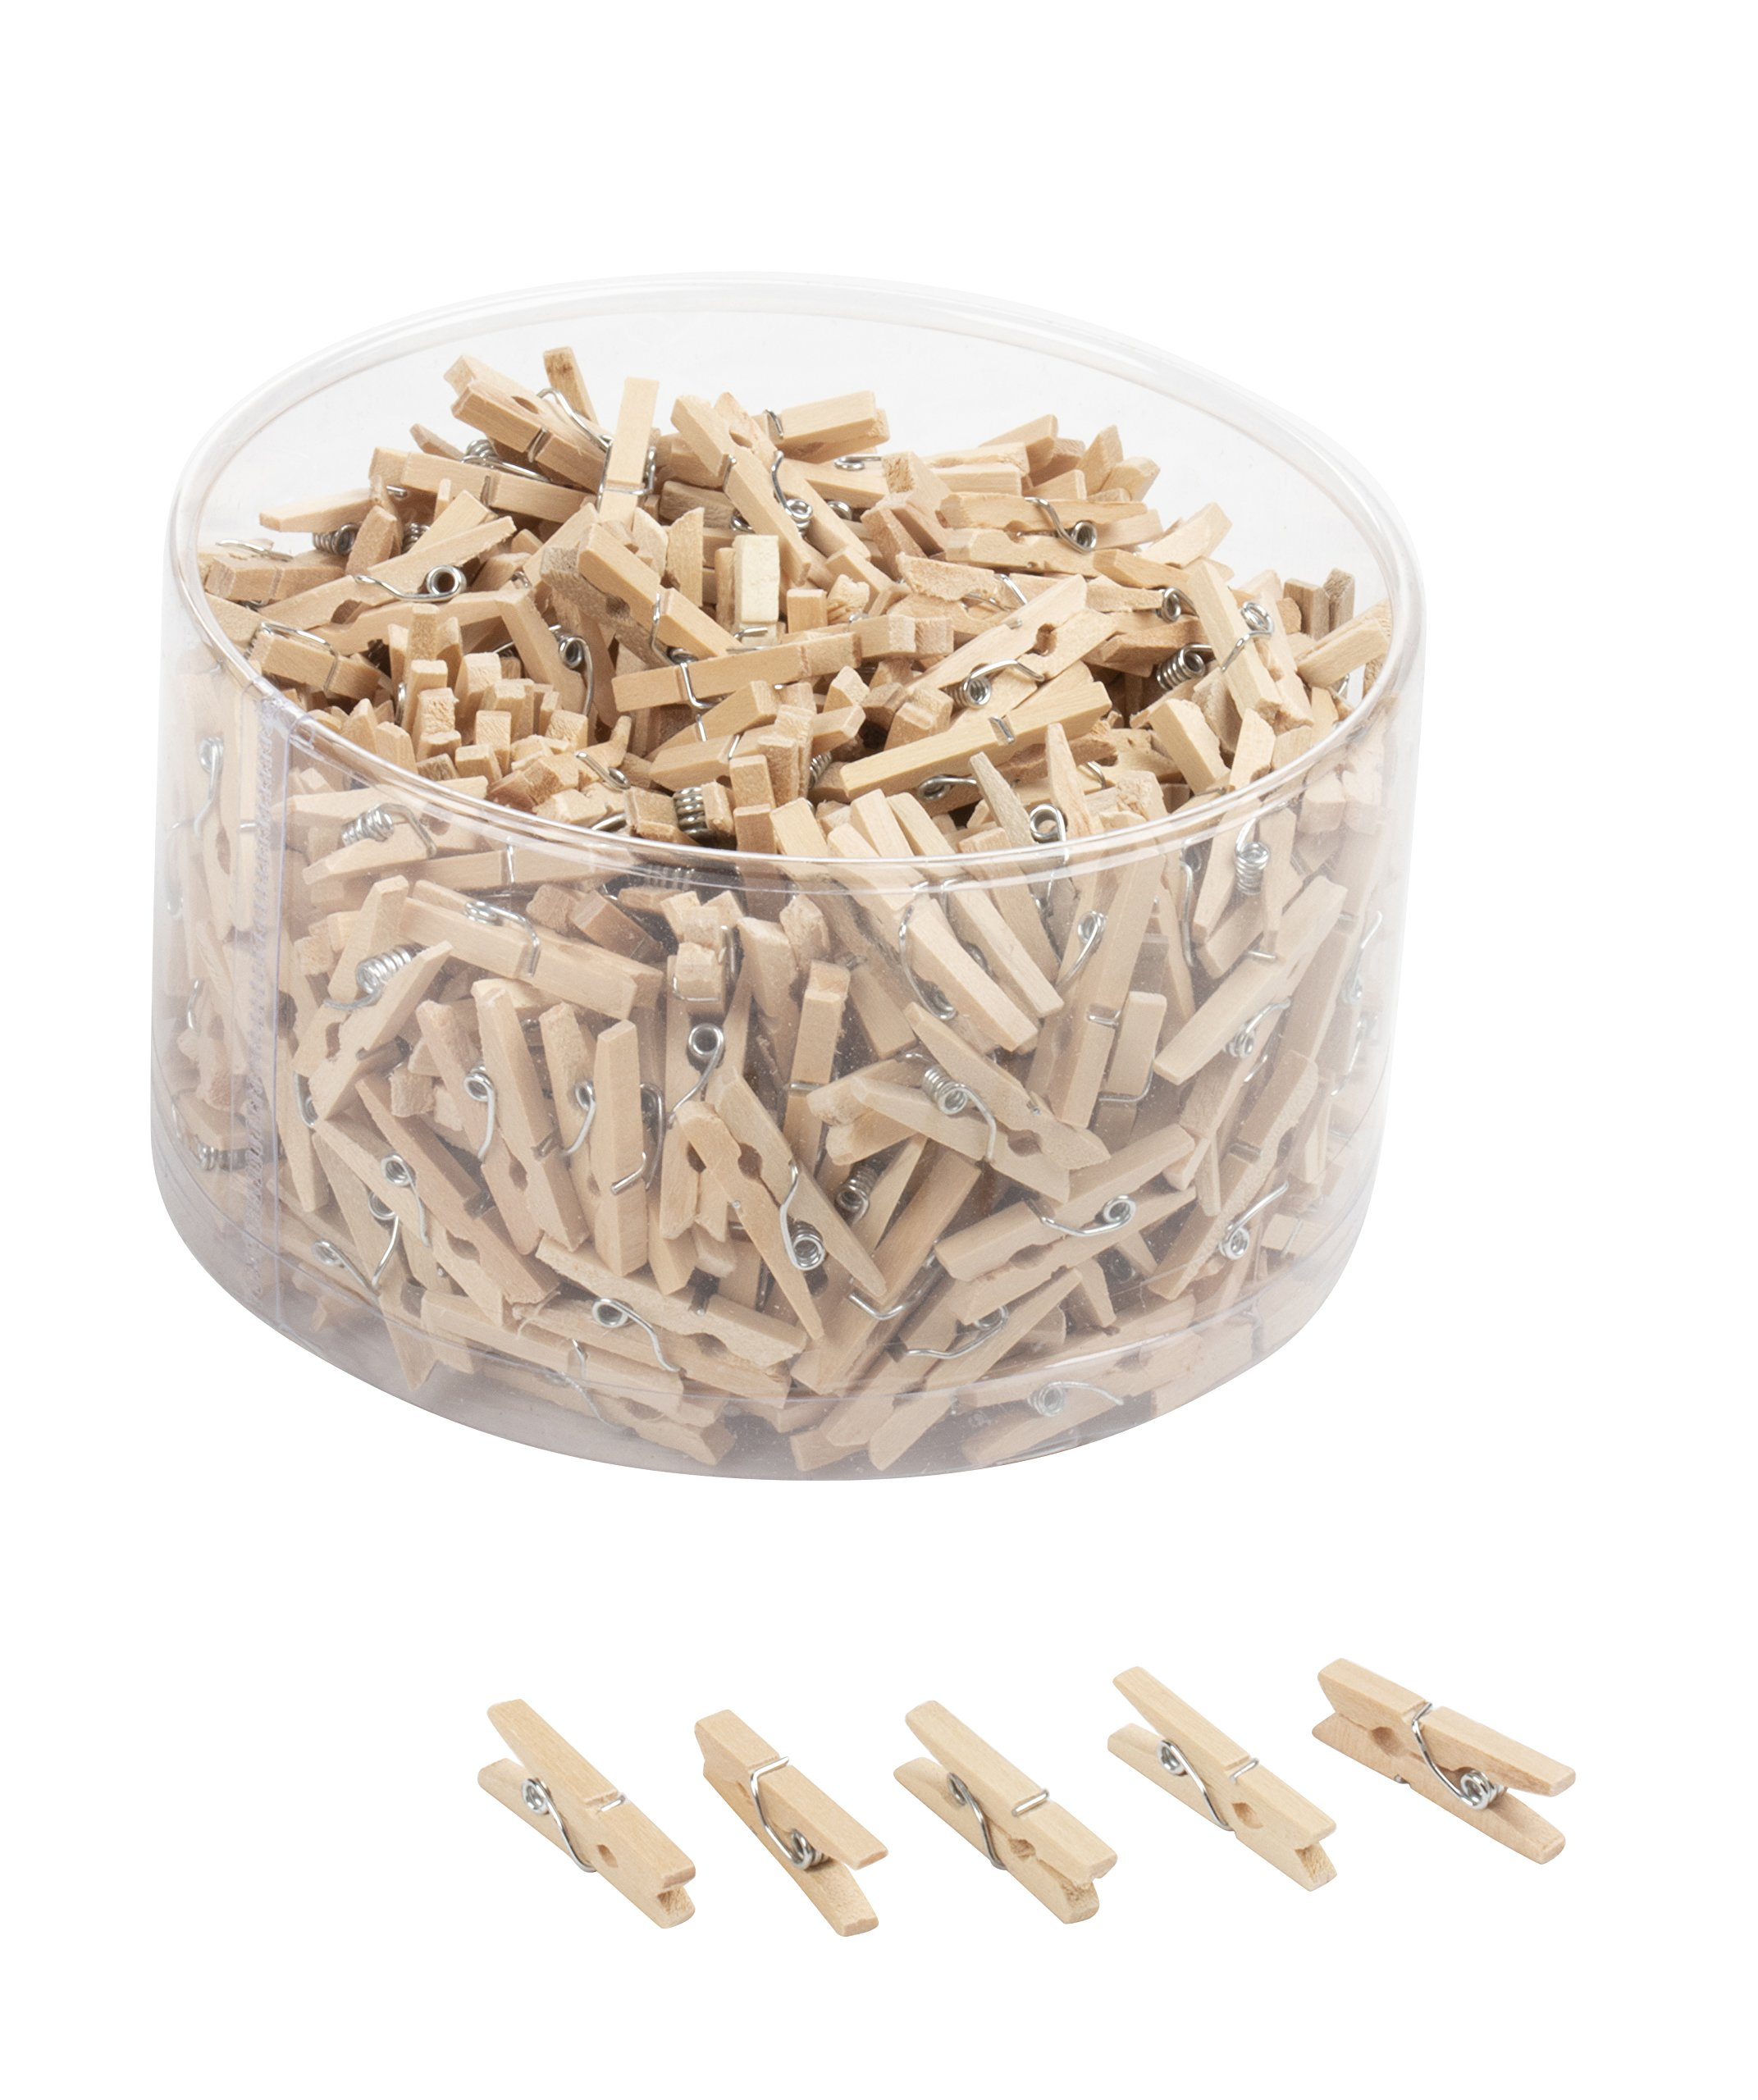 Mini Wooden Clothespins - 500-Piece Unfinished Wooden Clips for Crafts, Photo Clips, Home Decoration, 0.5 x 0.5 x 0.98 inches